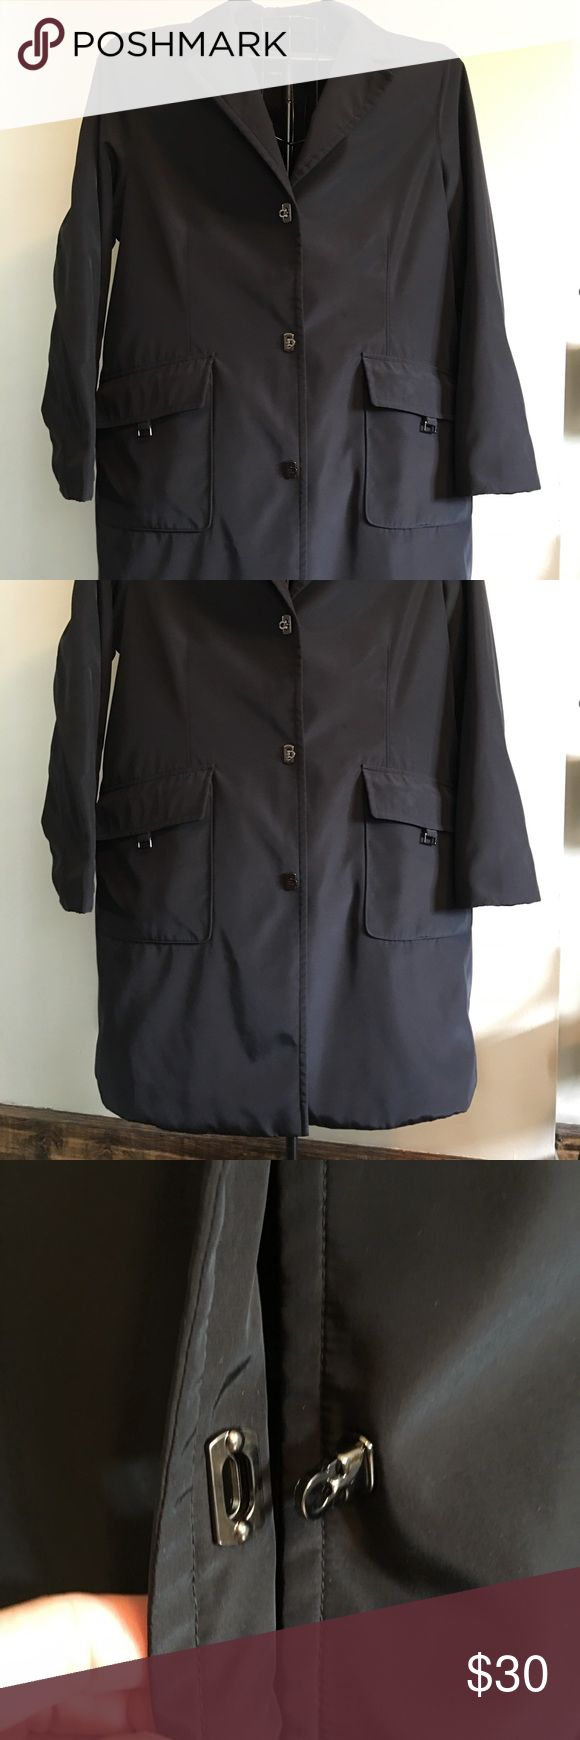 """💄👠Gorgeous ladies trench coat💄👠 EUC ladies trench coat. Lightly lined. Water resistant. Very cool slip thru, magnetic button enclosures. Knee length. (I'm 5'4"""") Classic and stylish must have coat! Jones New York Jackets & Coats Trench Coats"""